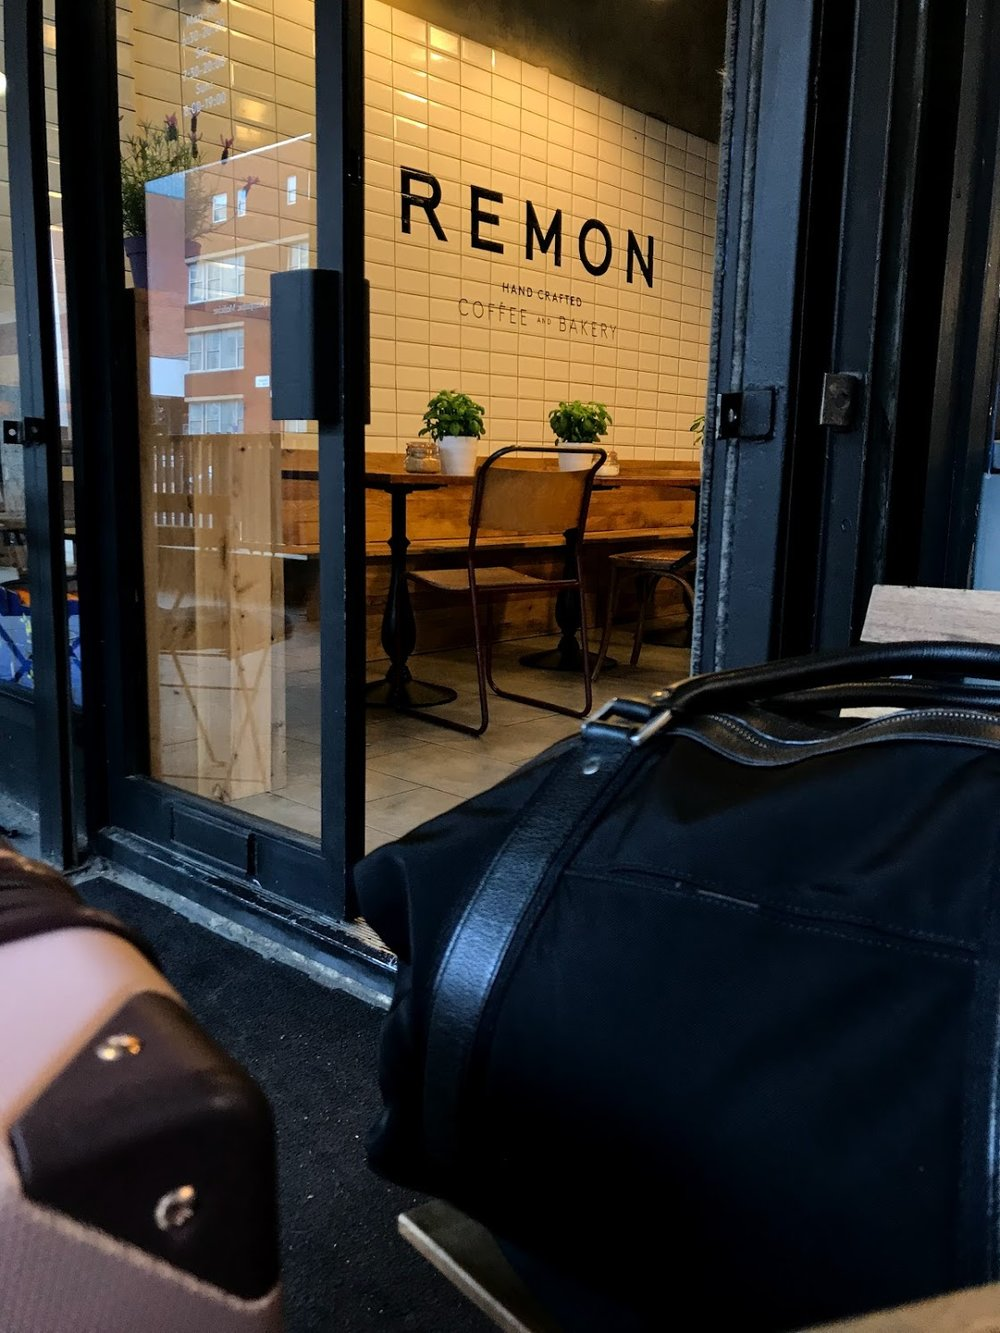 Remon Coffee and bakery.jpg